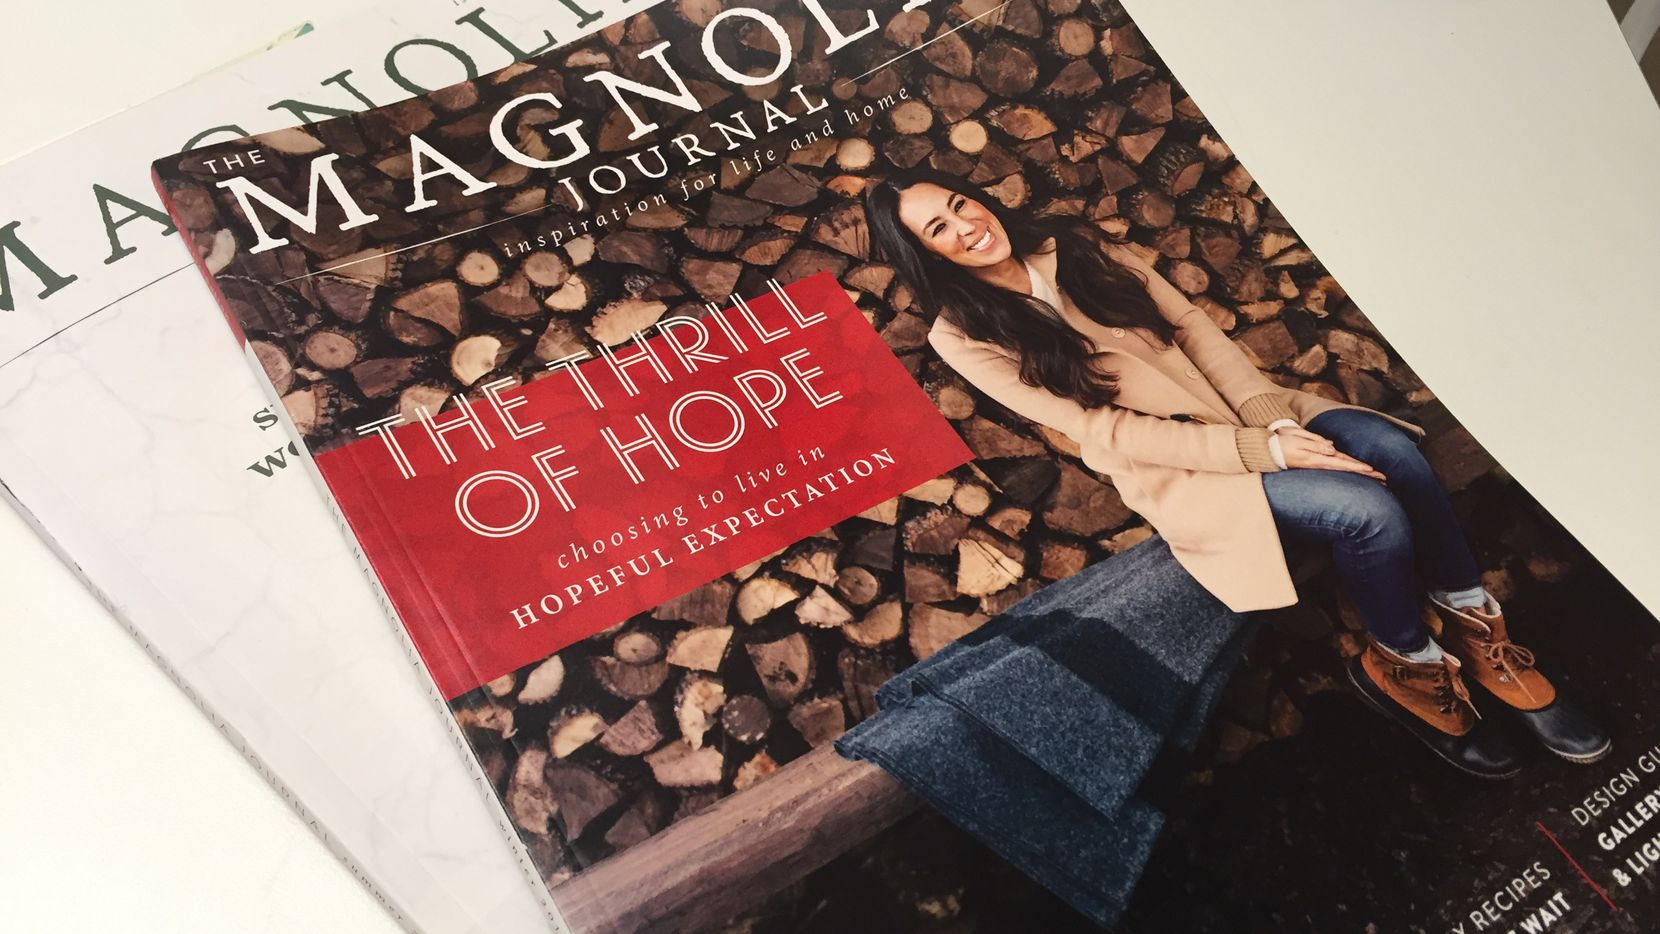 Magnolia Journal is a quarterly magazine from Chip and Joanna Gaines, Waco's celebrity couple.